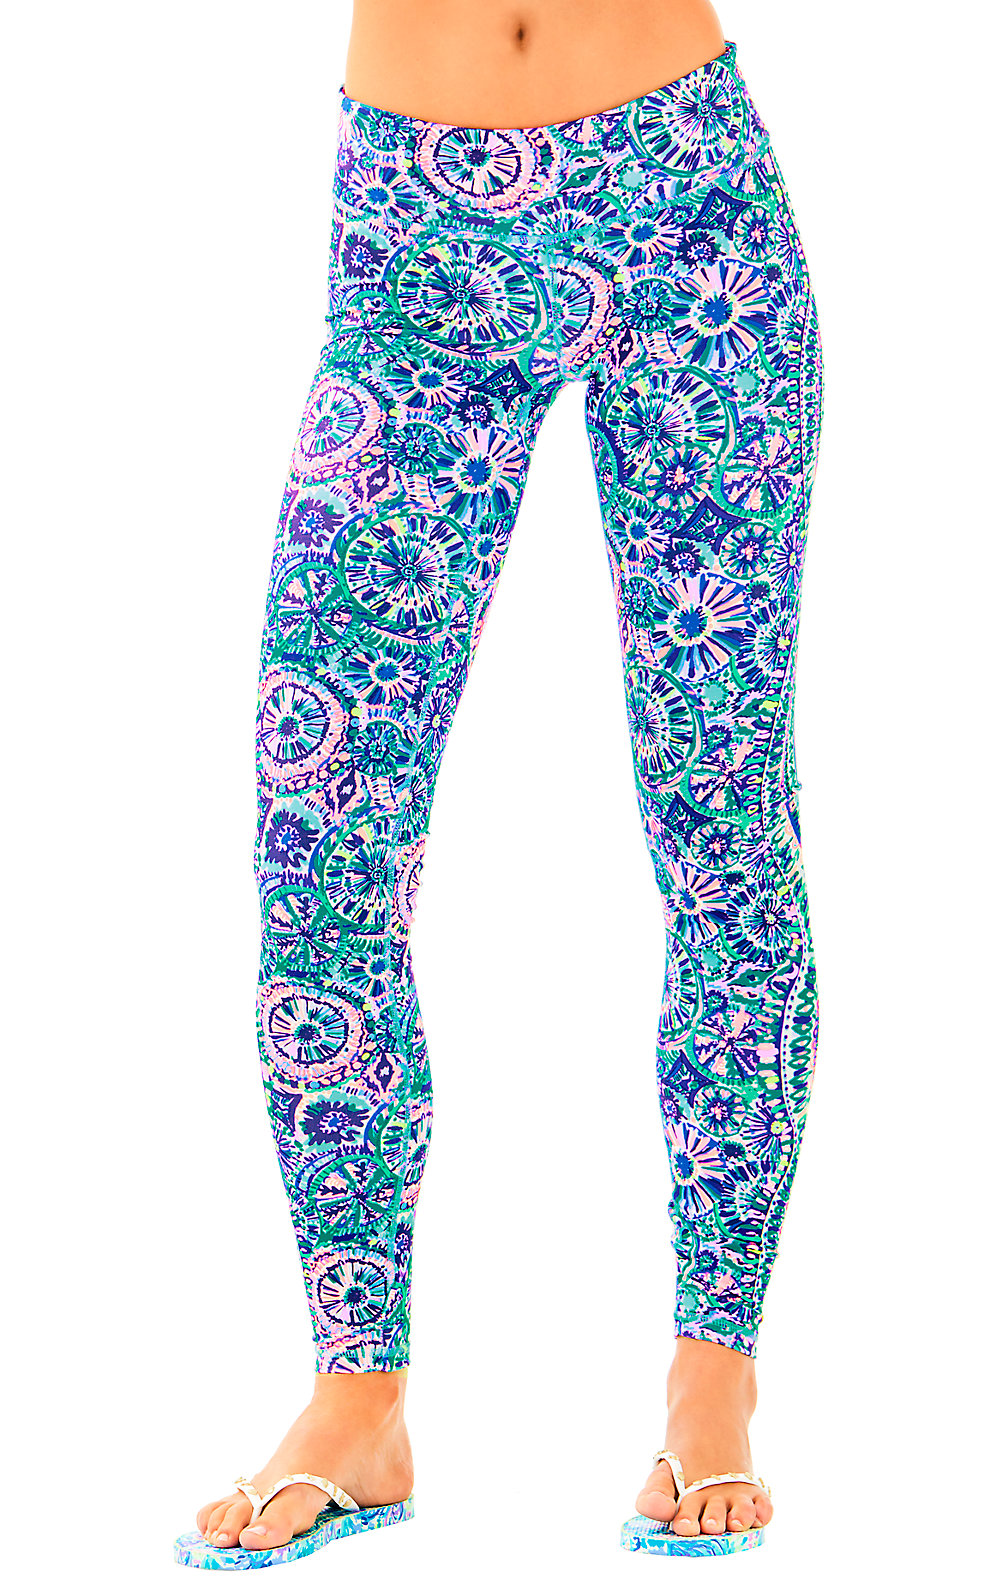 Lilly Pulitzer UPF 50+ Luxletic 26